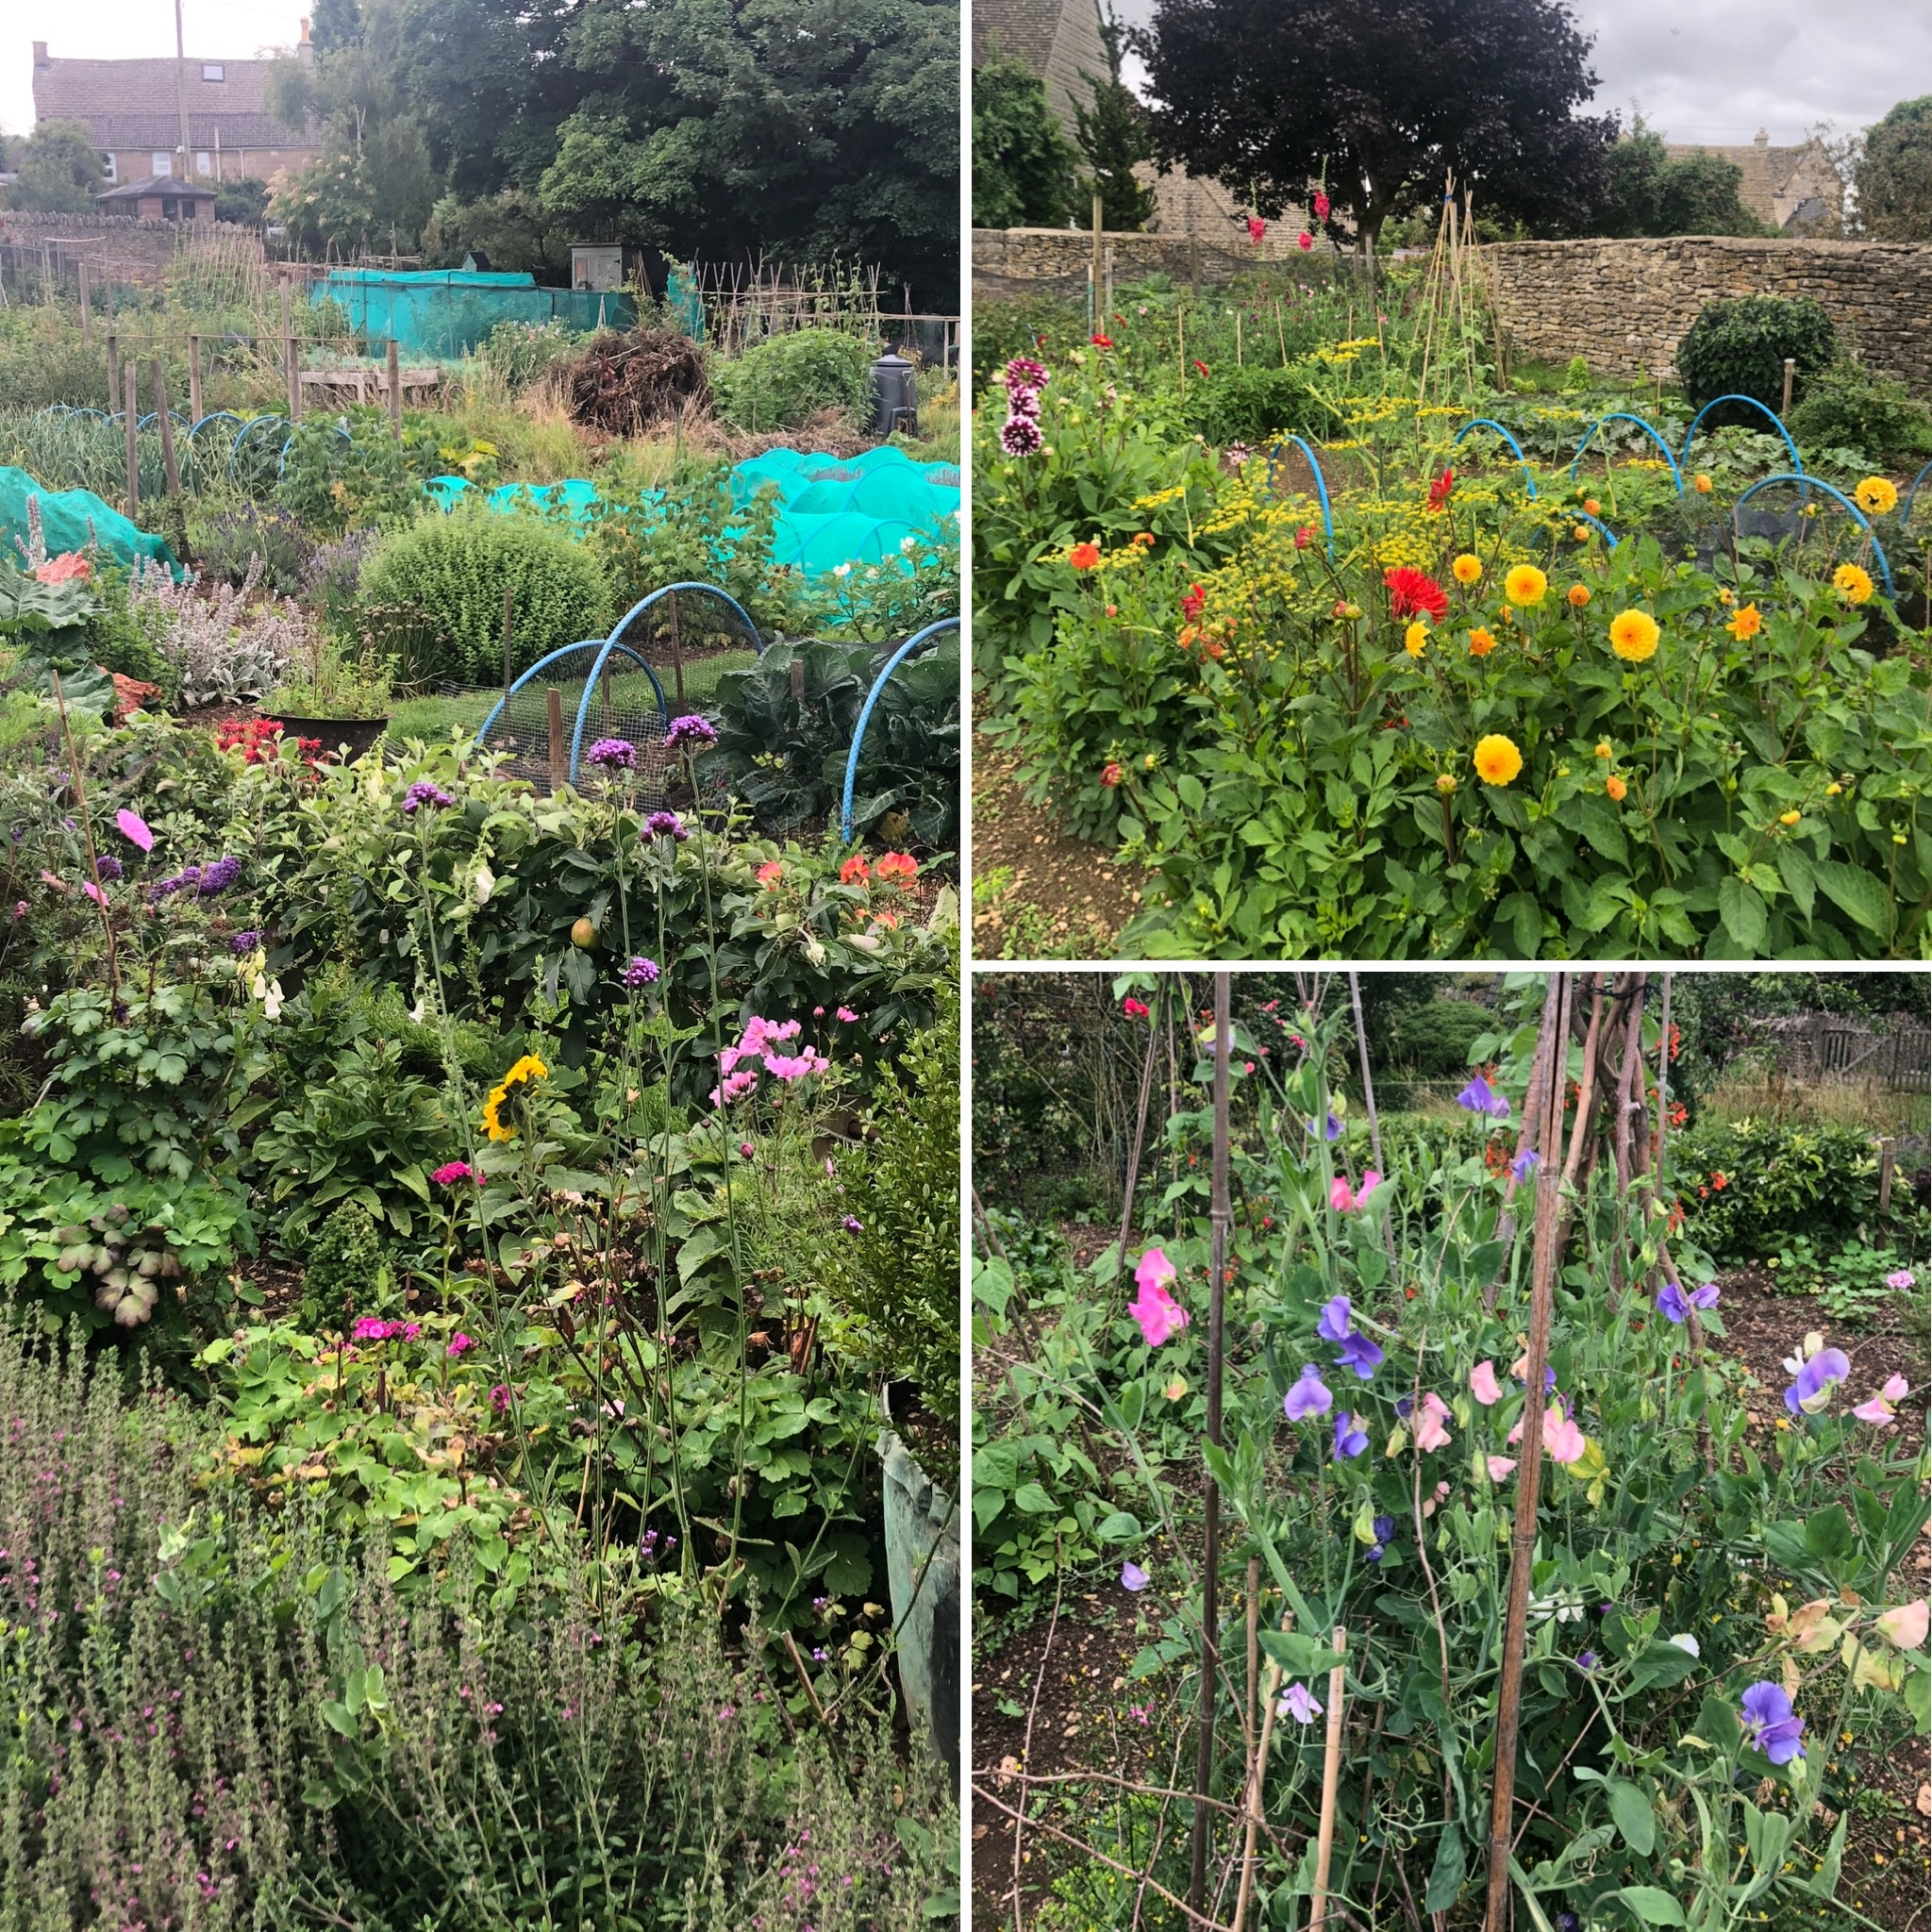 Flowers Among The Veg On The Allotments